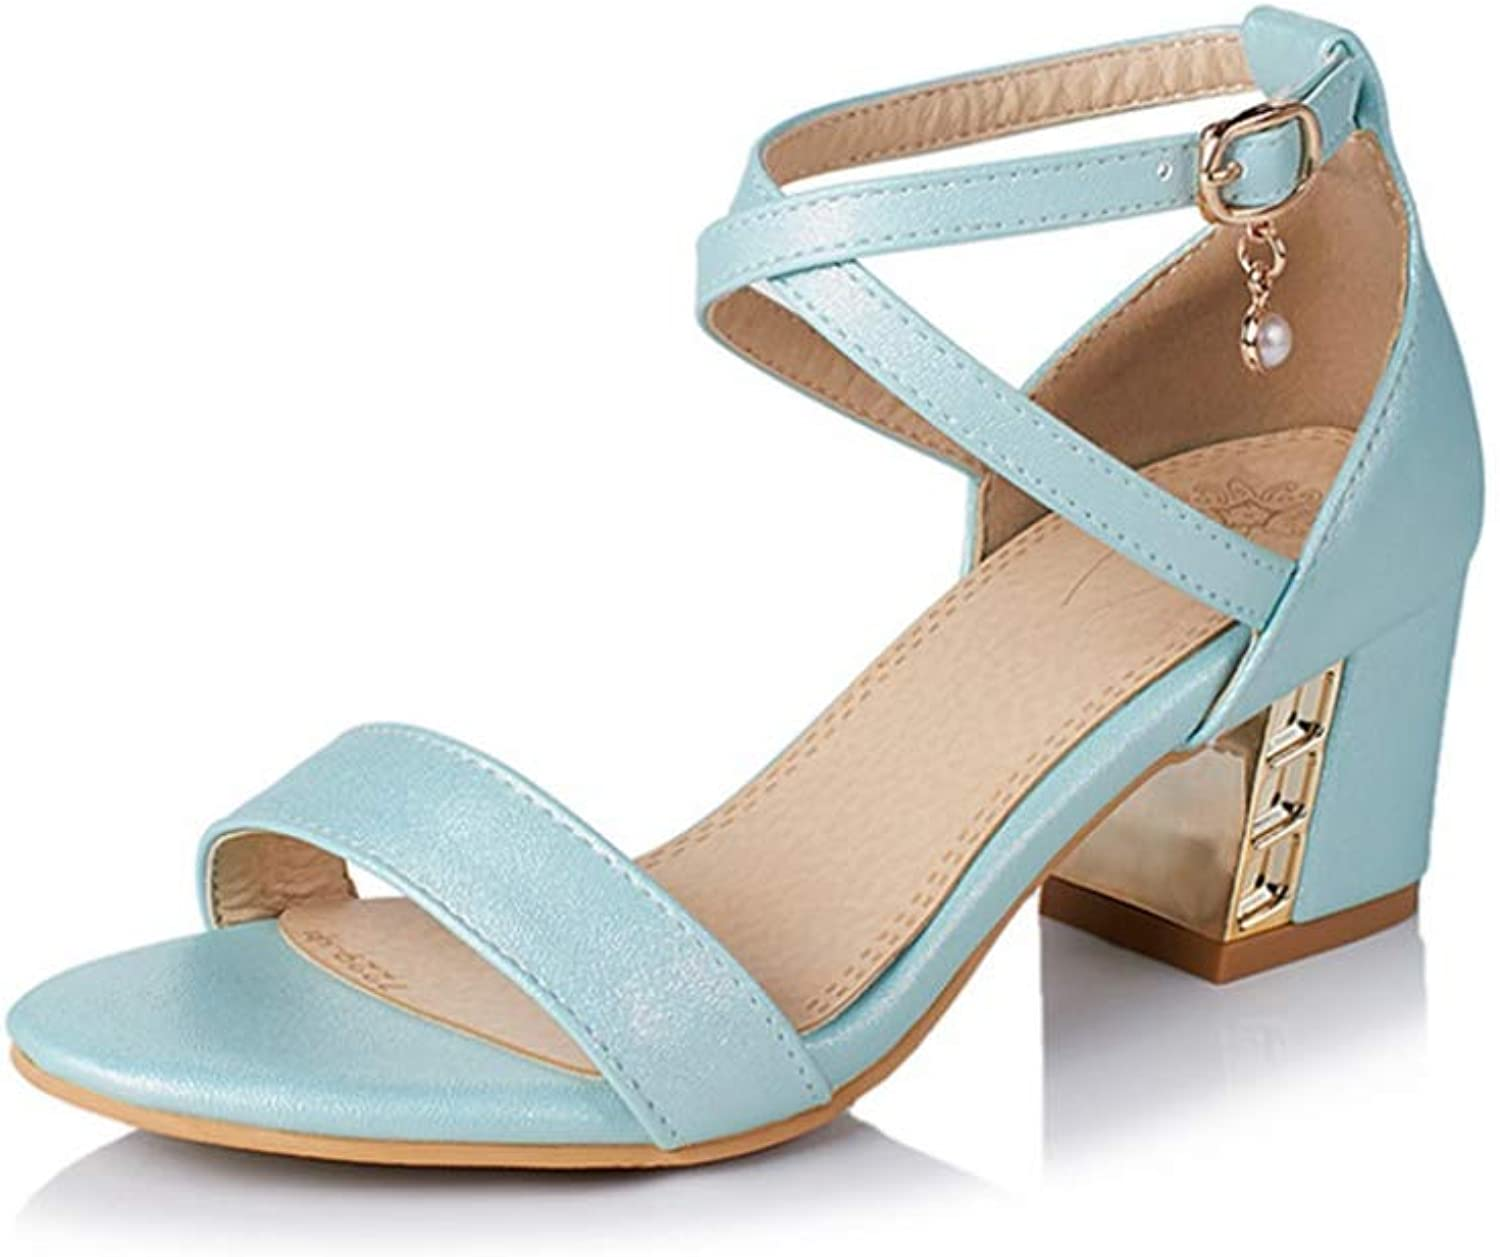 T-JULY Sandal for Women Open Toe Square Med Heels Lace-Up with Buckle Summer Fashion Breathable Solid color Party Ladies Cover Heel shoes